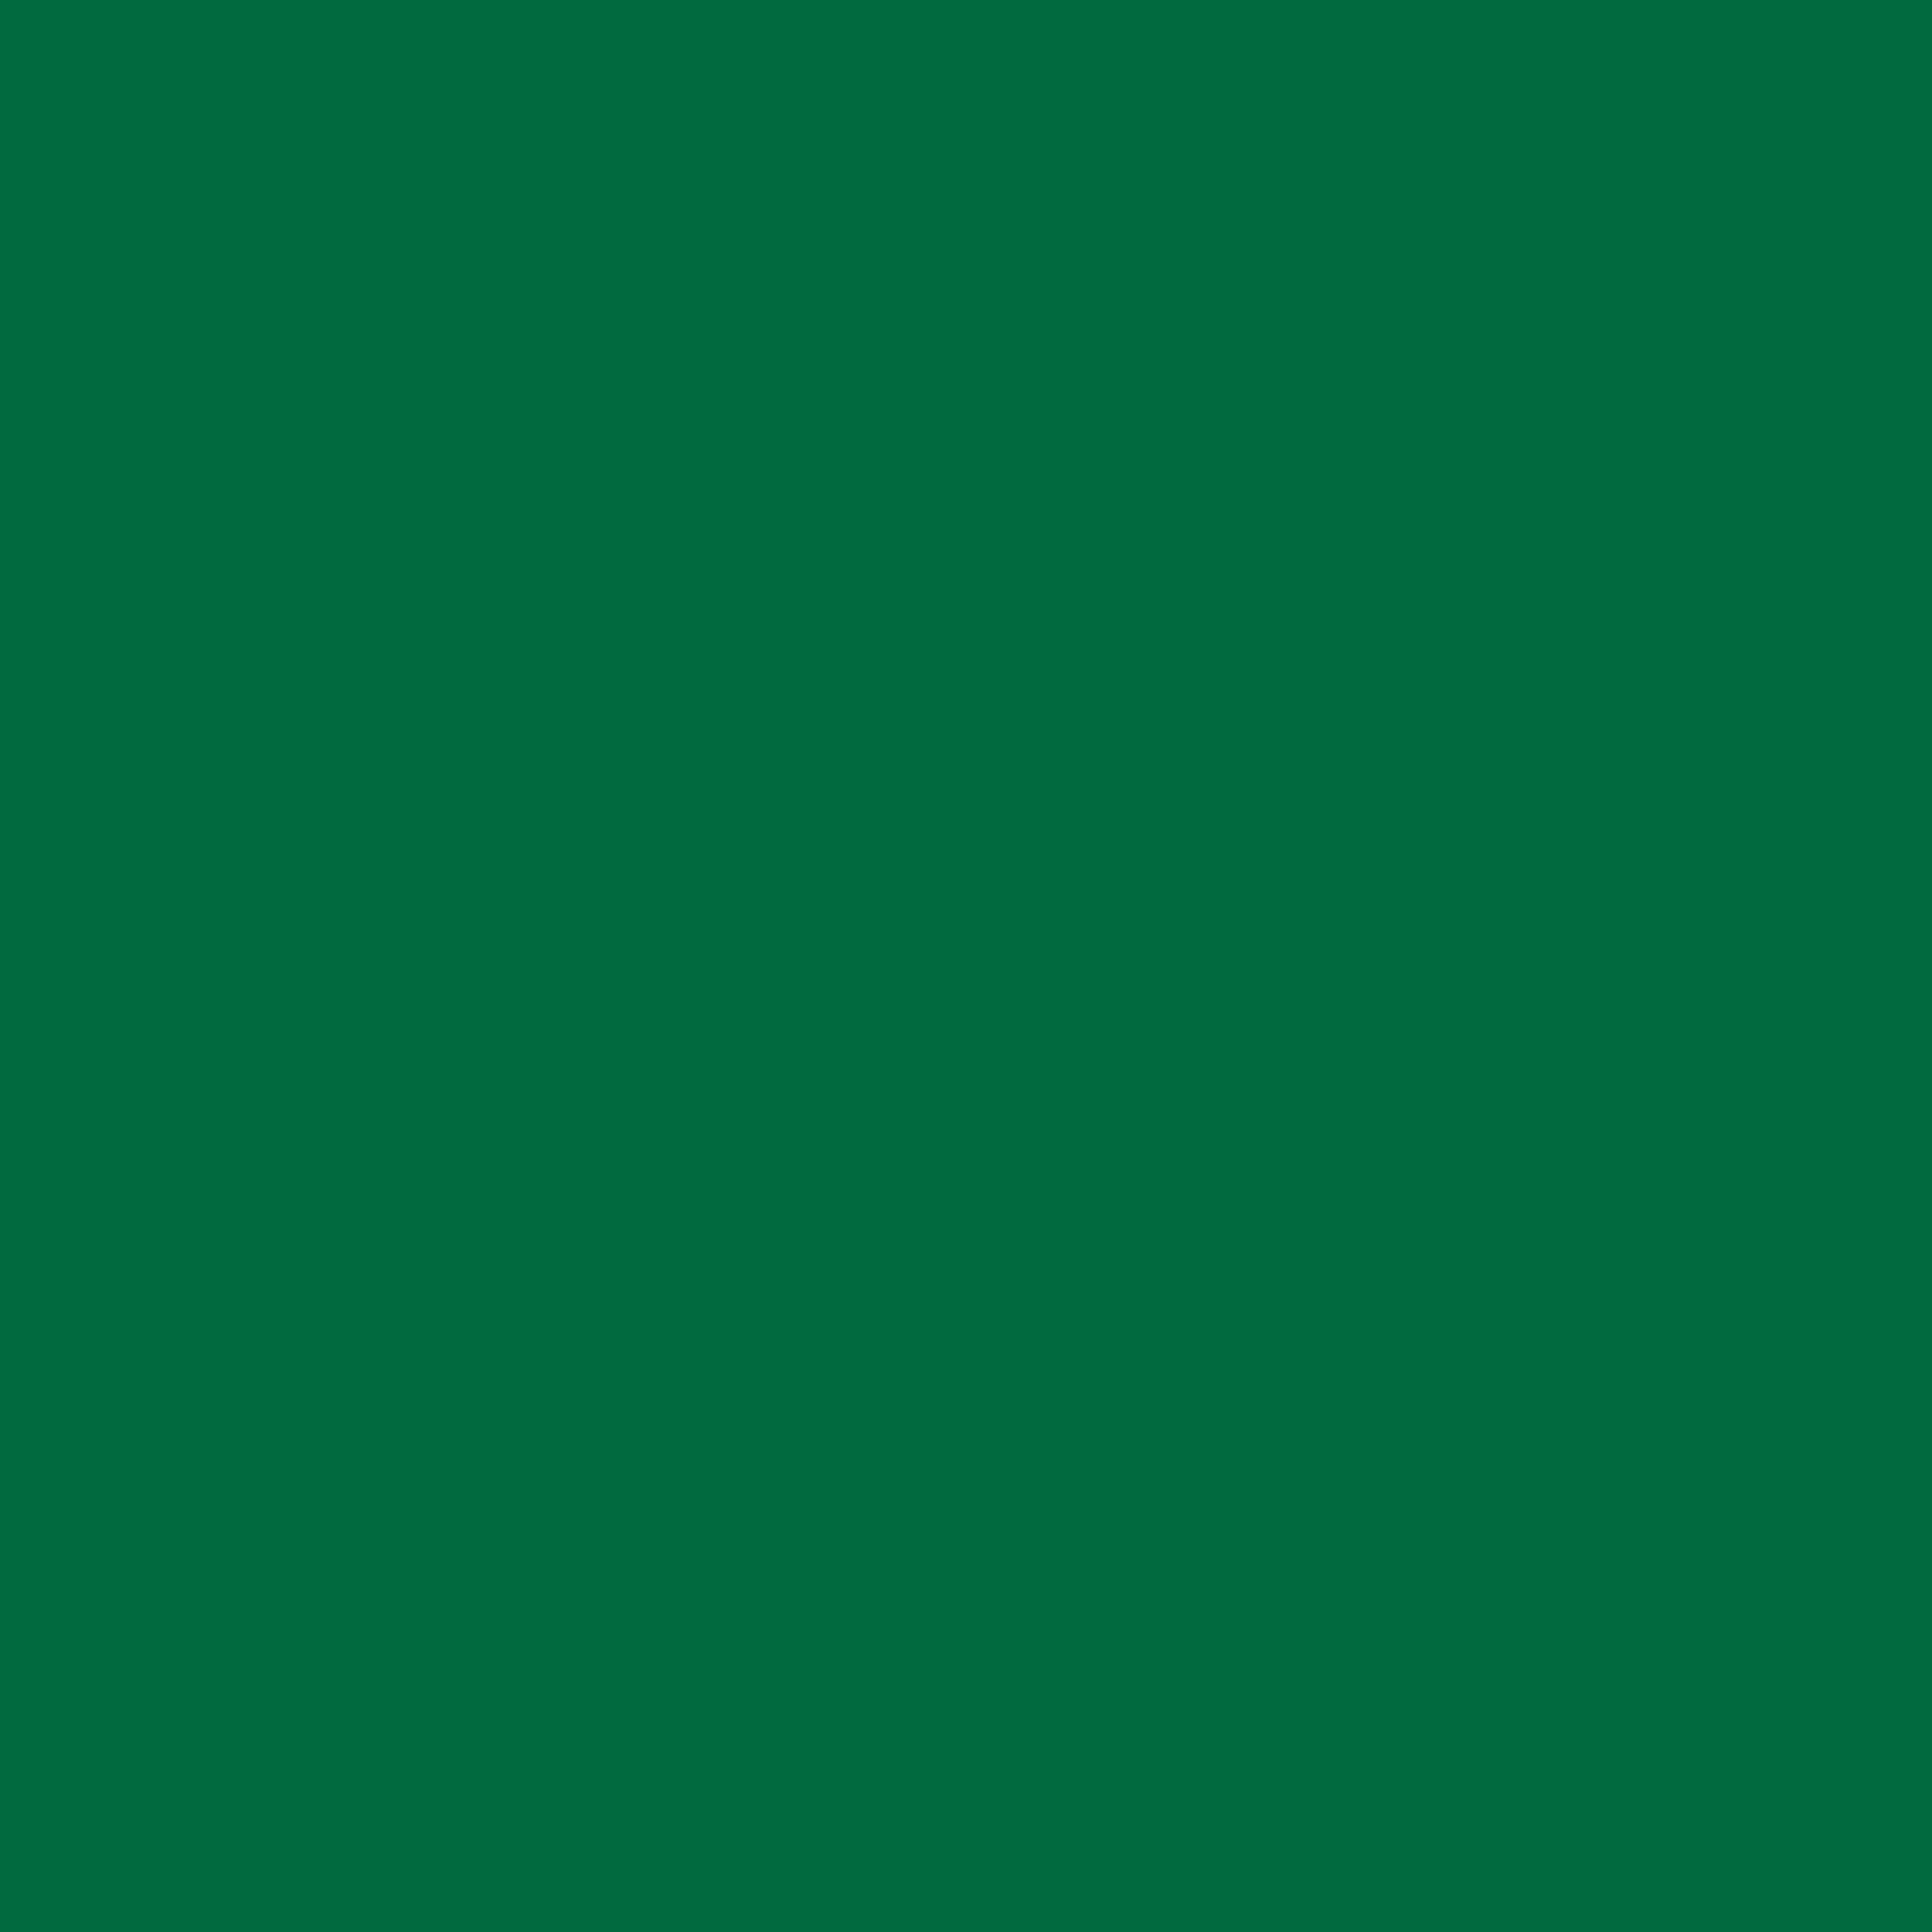 3600x3600 Cadmium Green Solid Color Background